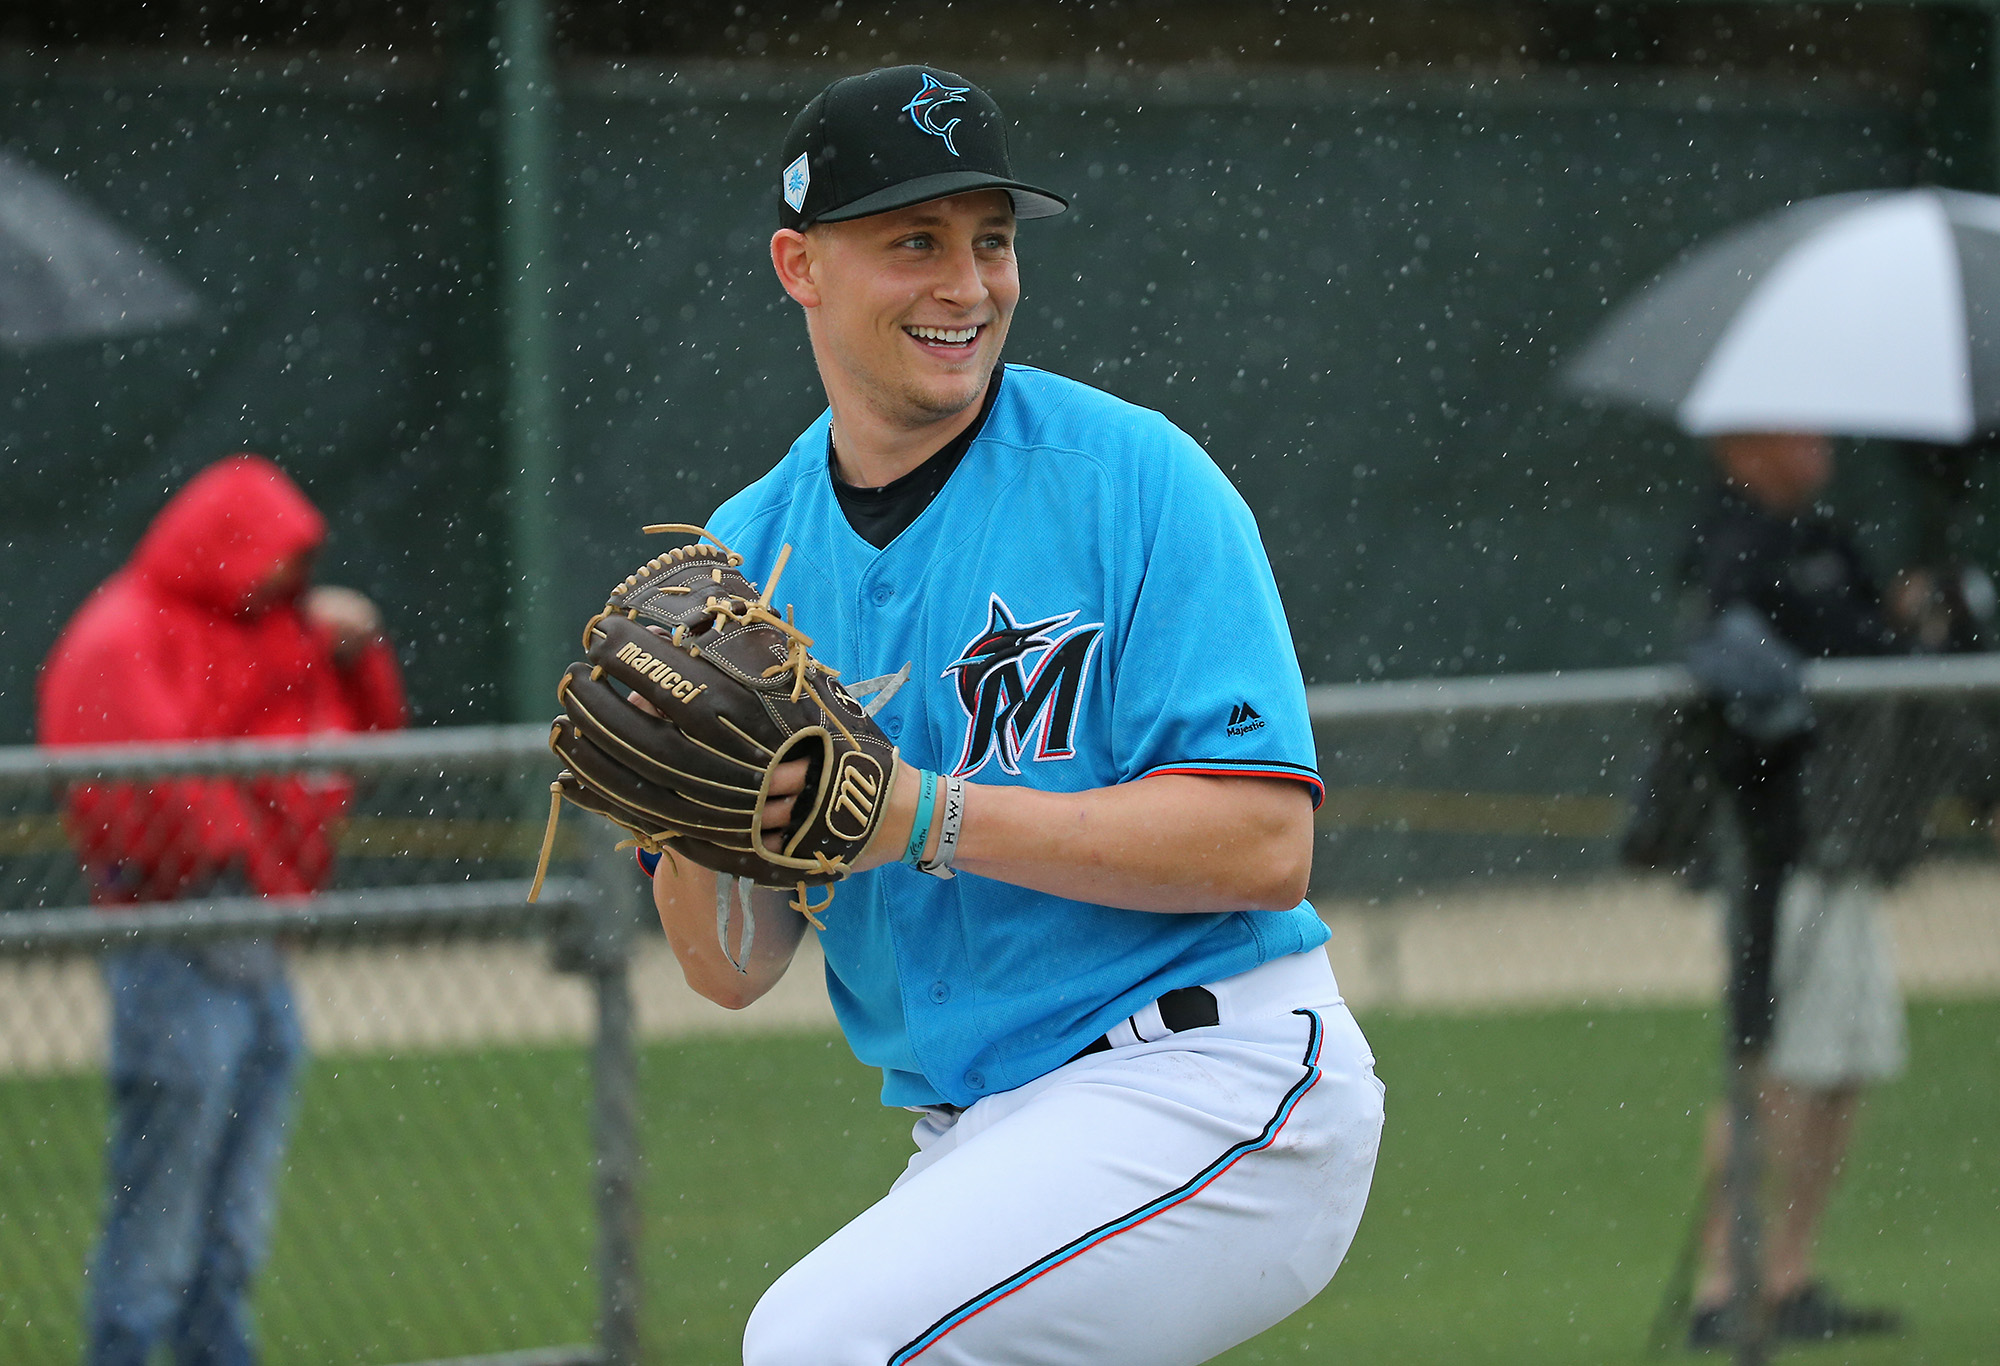 Miami Marlins spring training baseball workouts for pitchers and catchers 2/13/2019